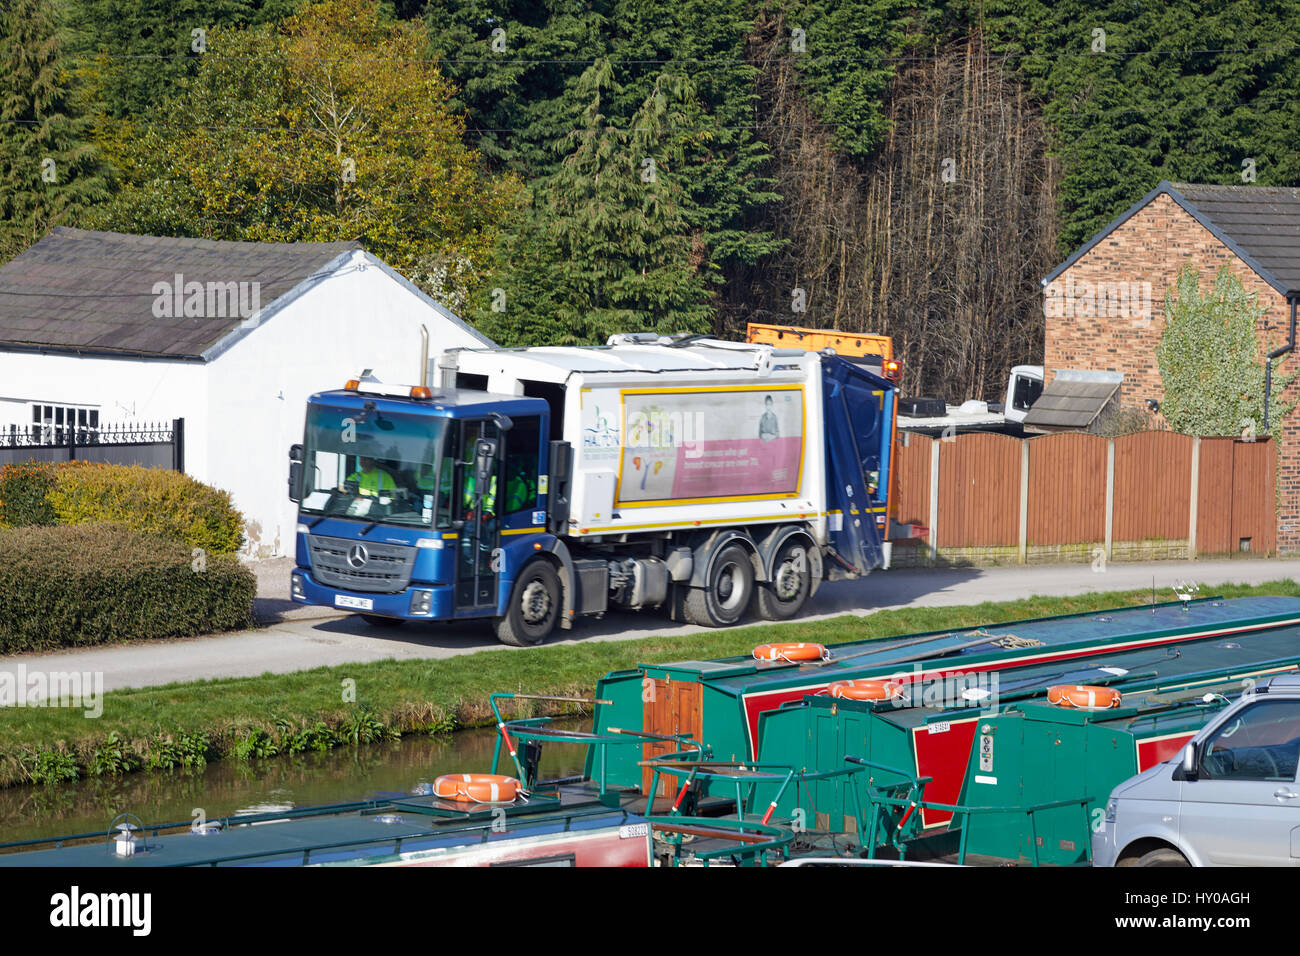 canal rubbish collection stock photos canal rubbish. Black Bedroom Furniture Sets. Home Design Ideas